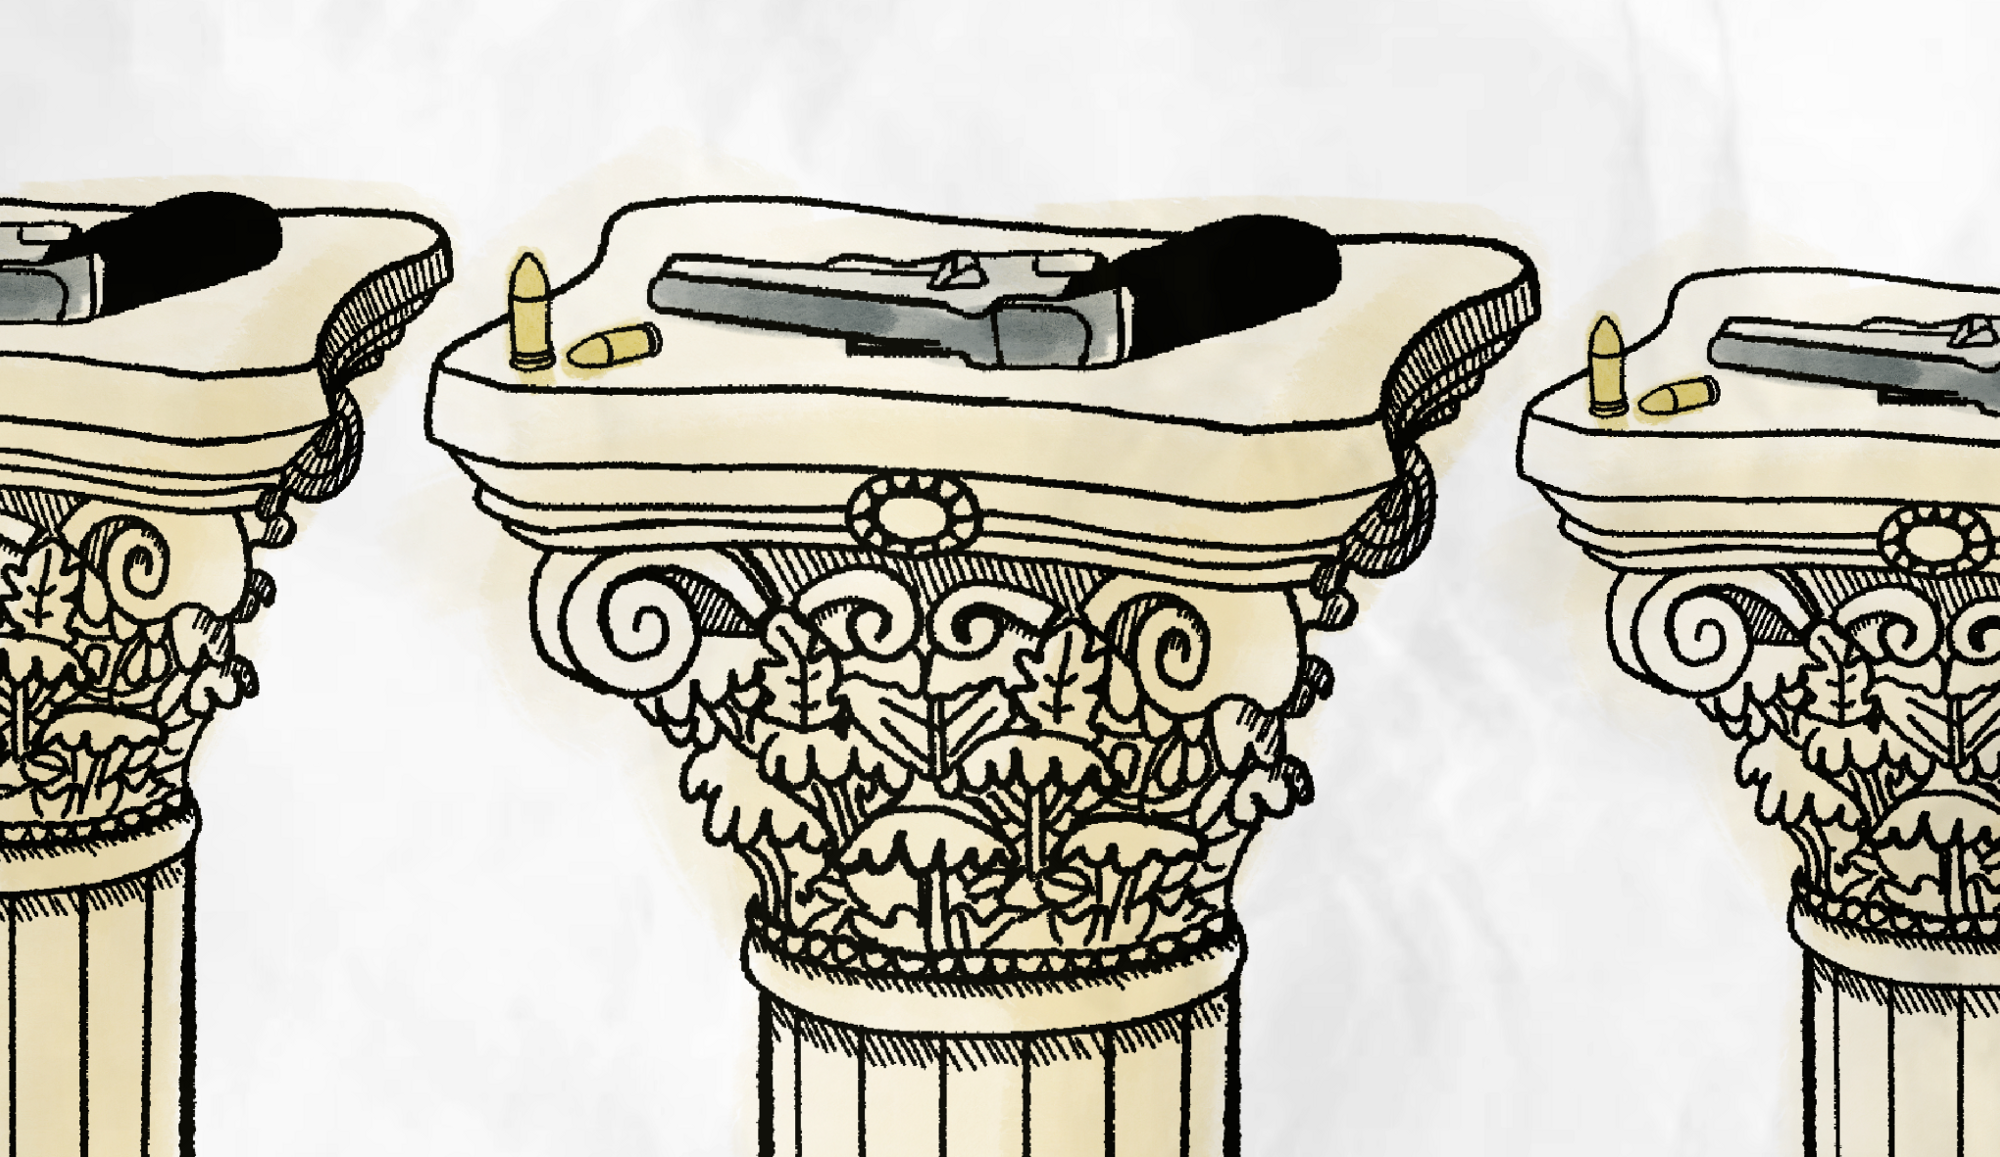 An intricate column with a gun on the top of a column with bullets